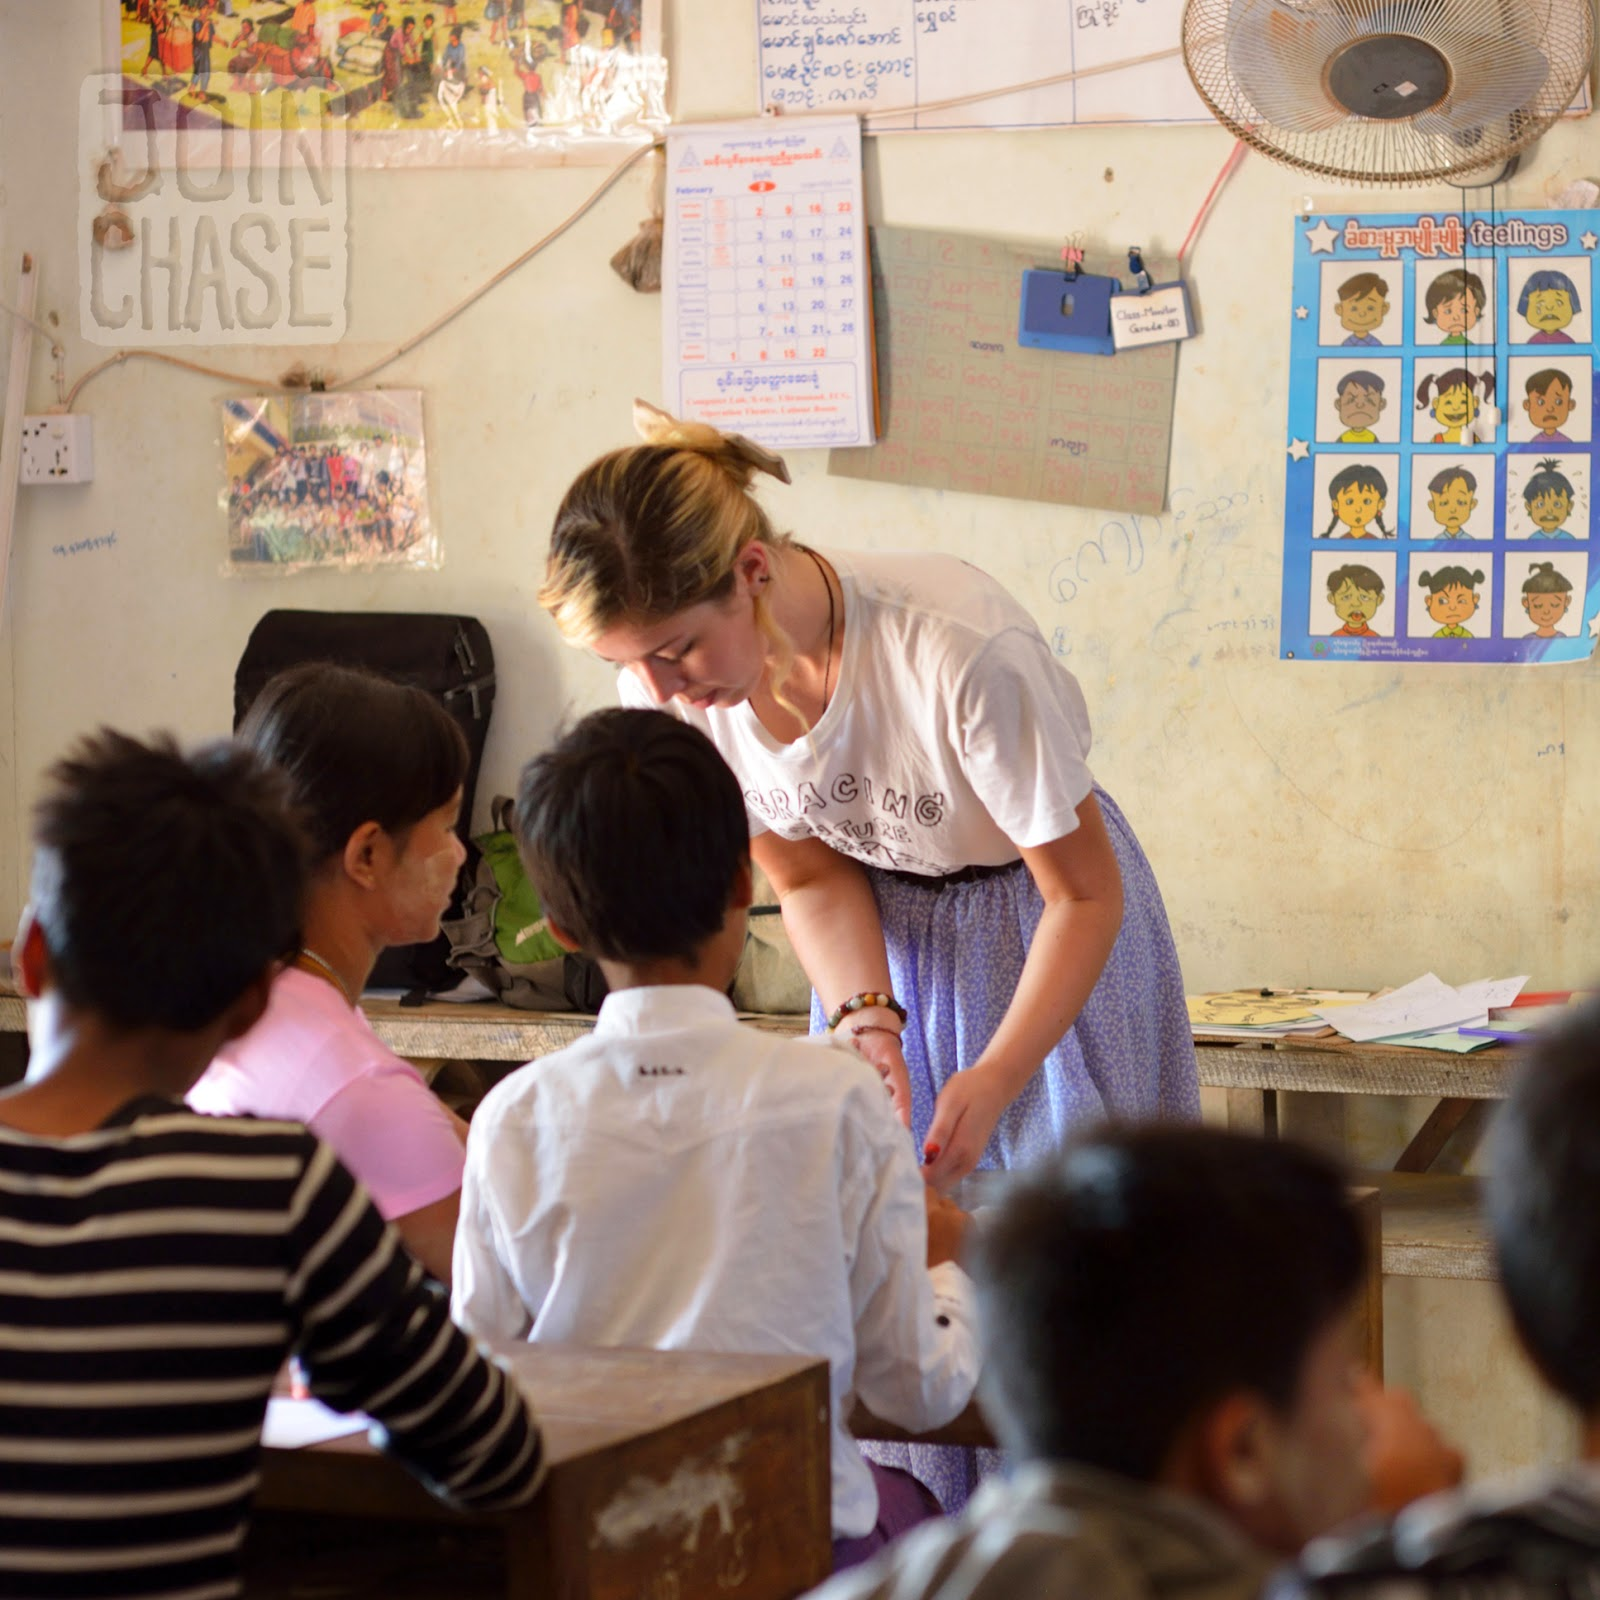 A Foreign English Teacher volunteering her time at an orphanage outside of Yangon, Myanmar.